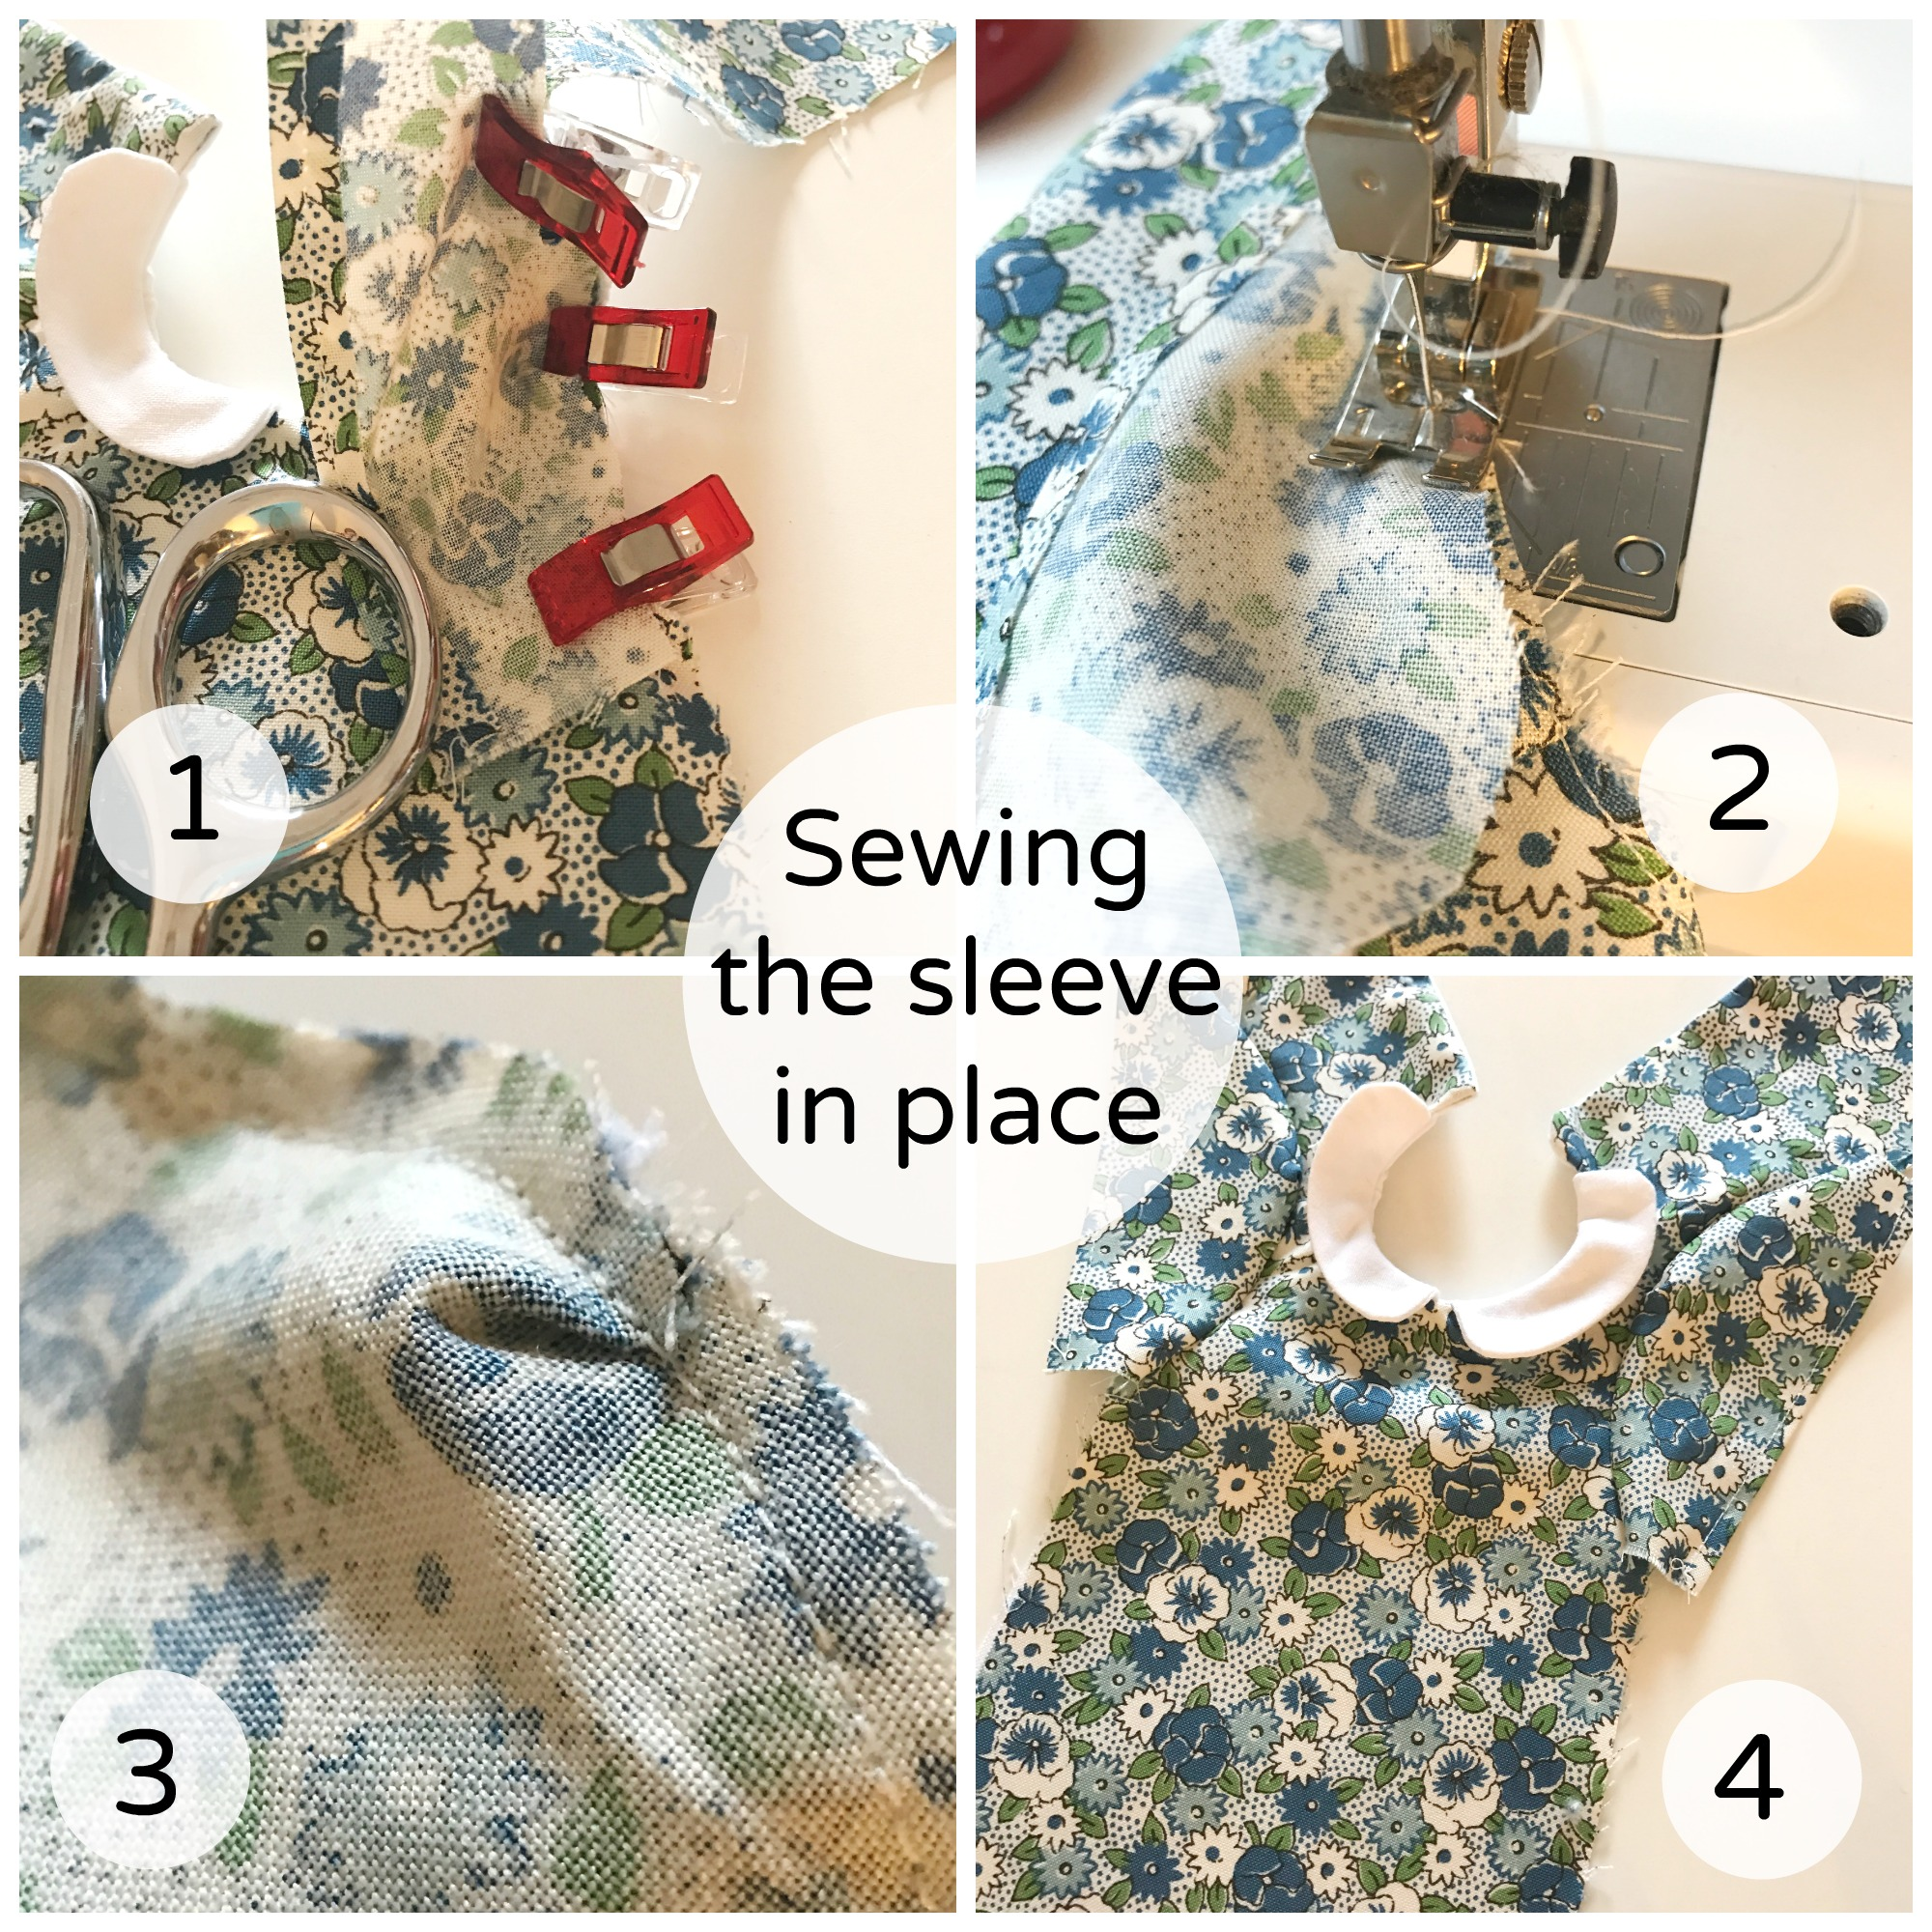 Sewing the sleeves in place